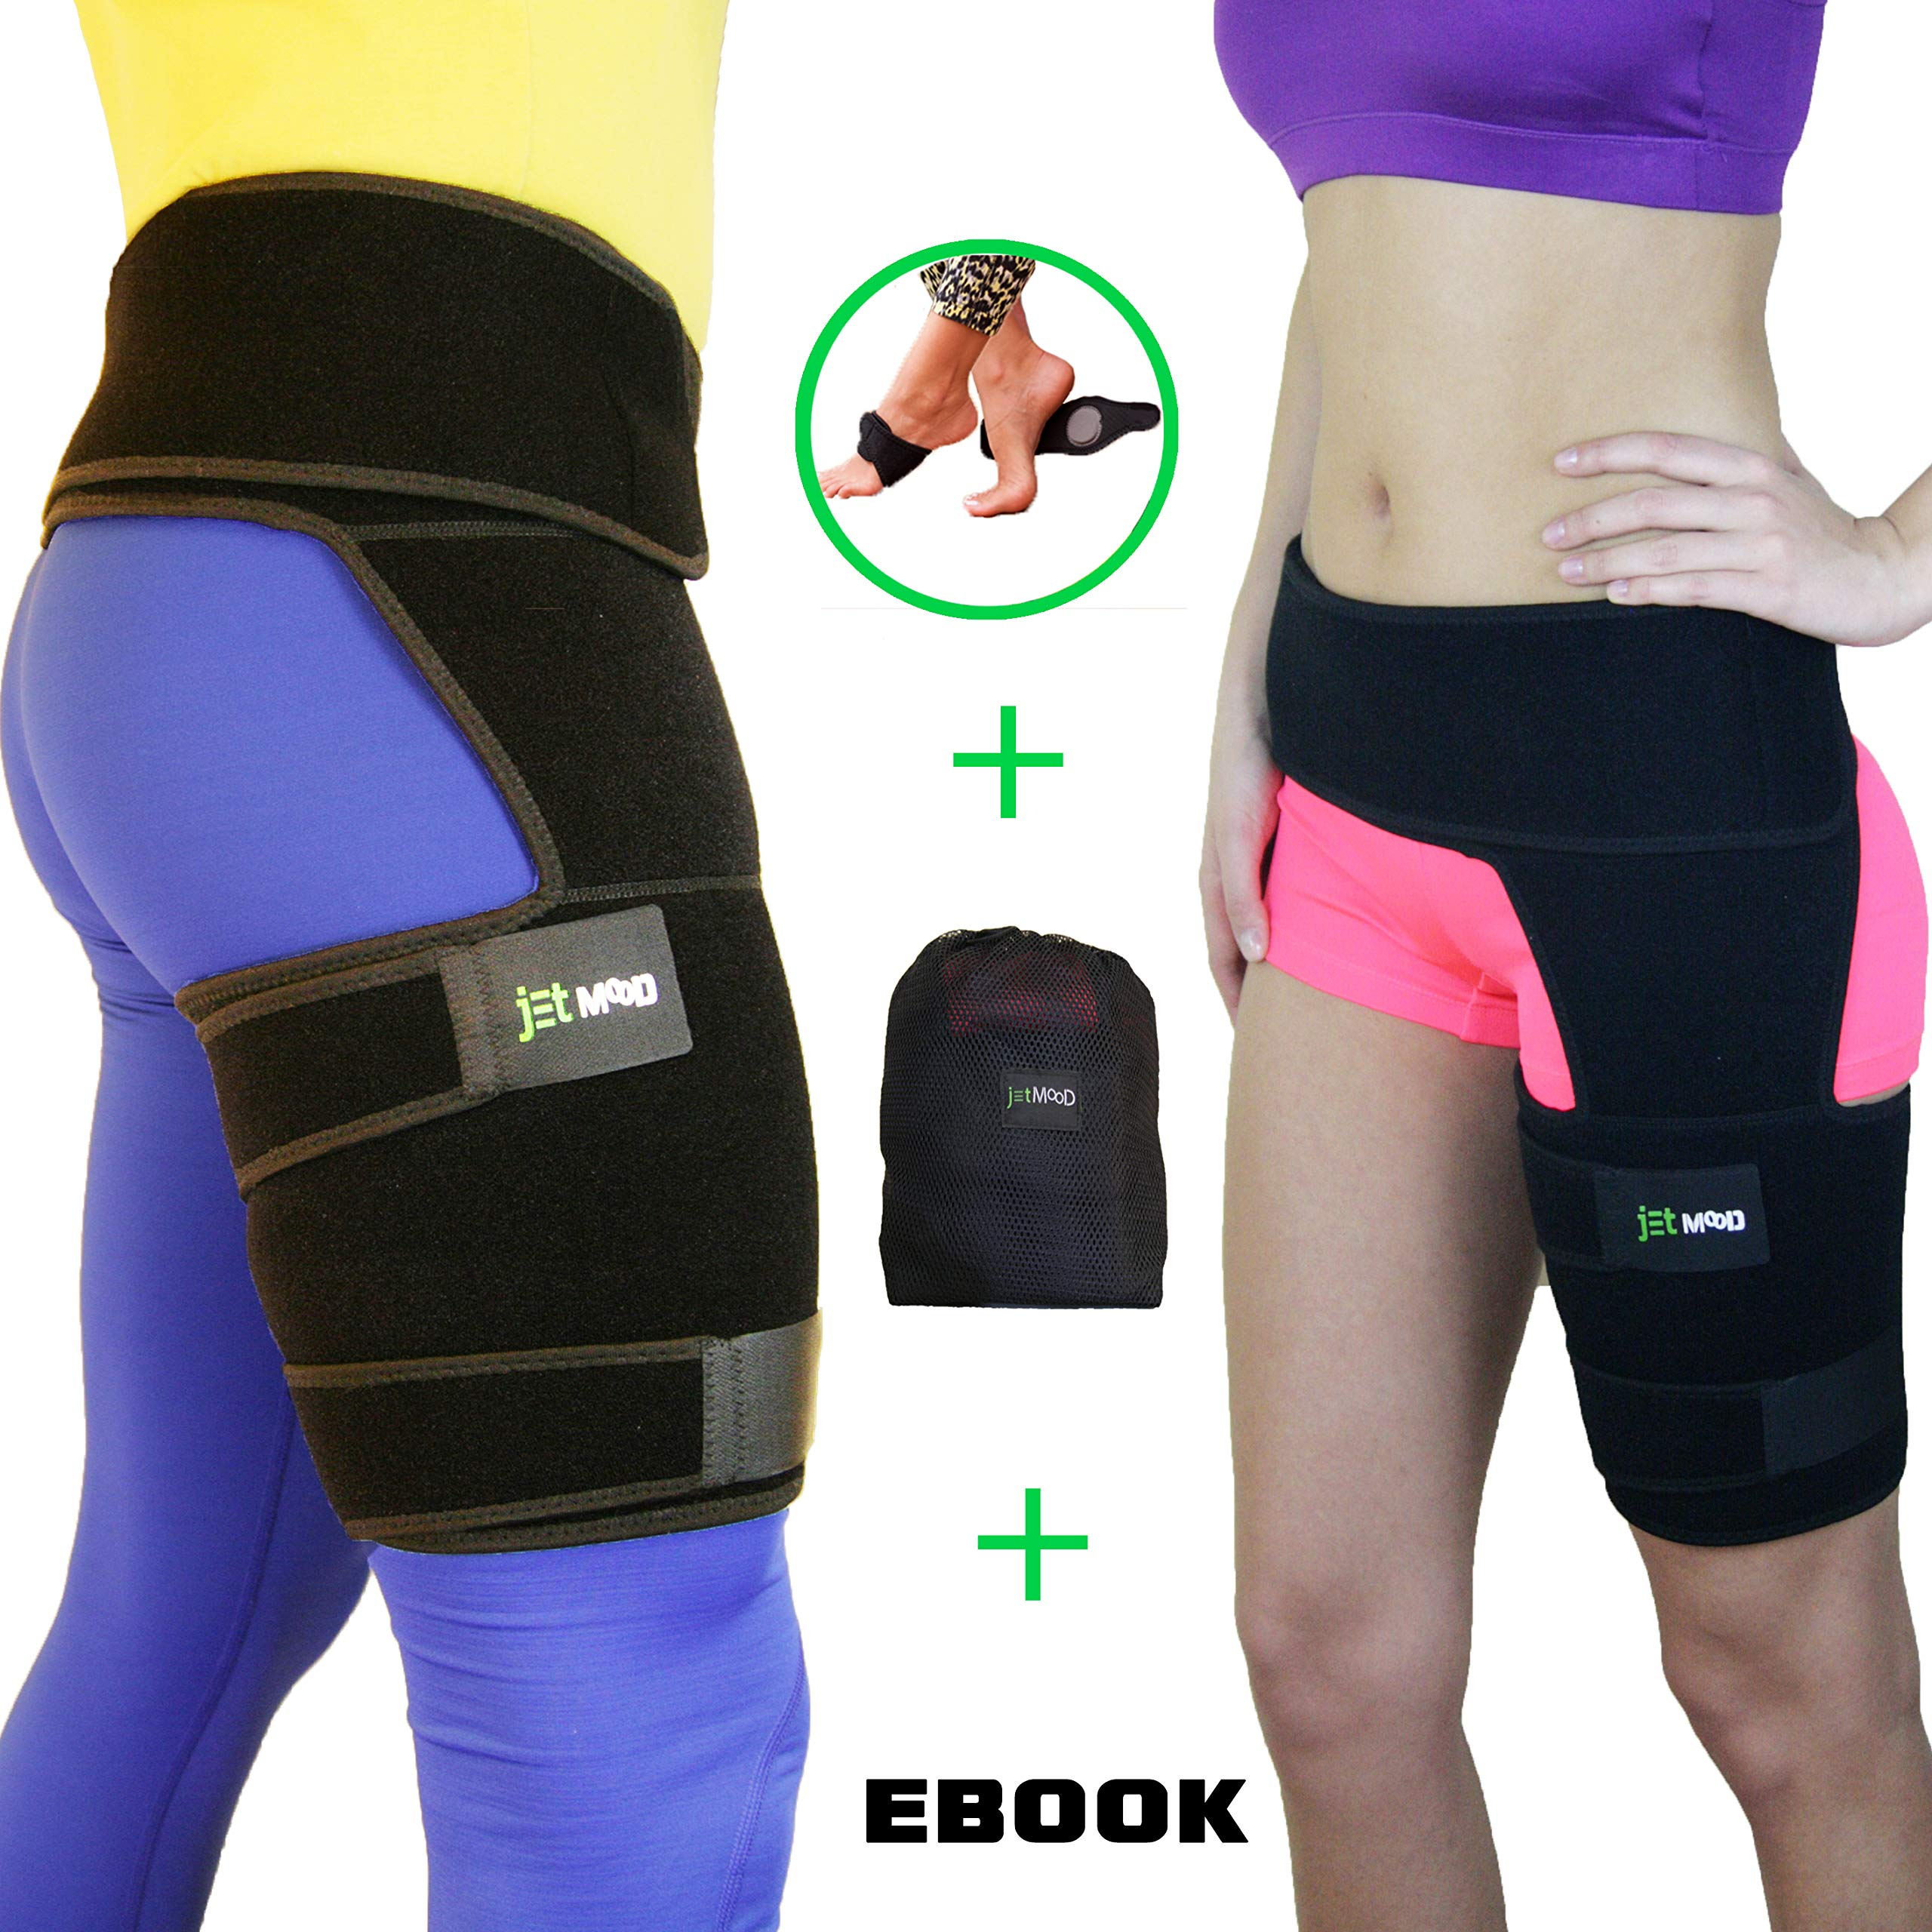 Hip Support Brace - Compression Groin Support for Men Women - Hip Stabilizer - Sciatic Nerve Pain Relief - Hip Flexor Brace - Hip Arthritis - Adjustable Thigh Compression Sleeve - Muscle Recovery